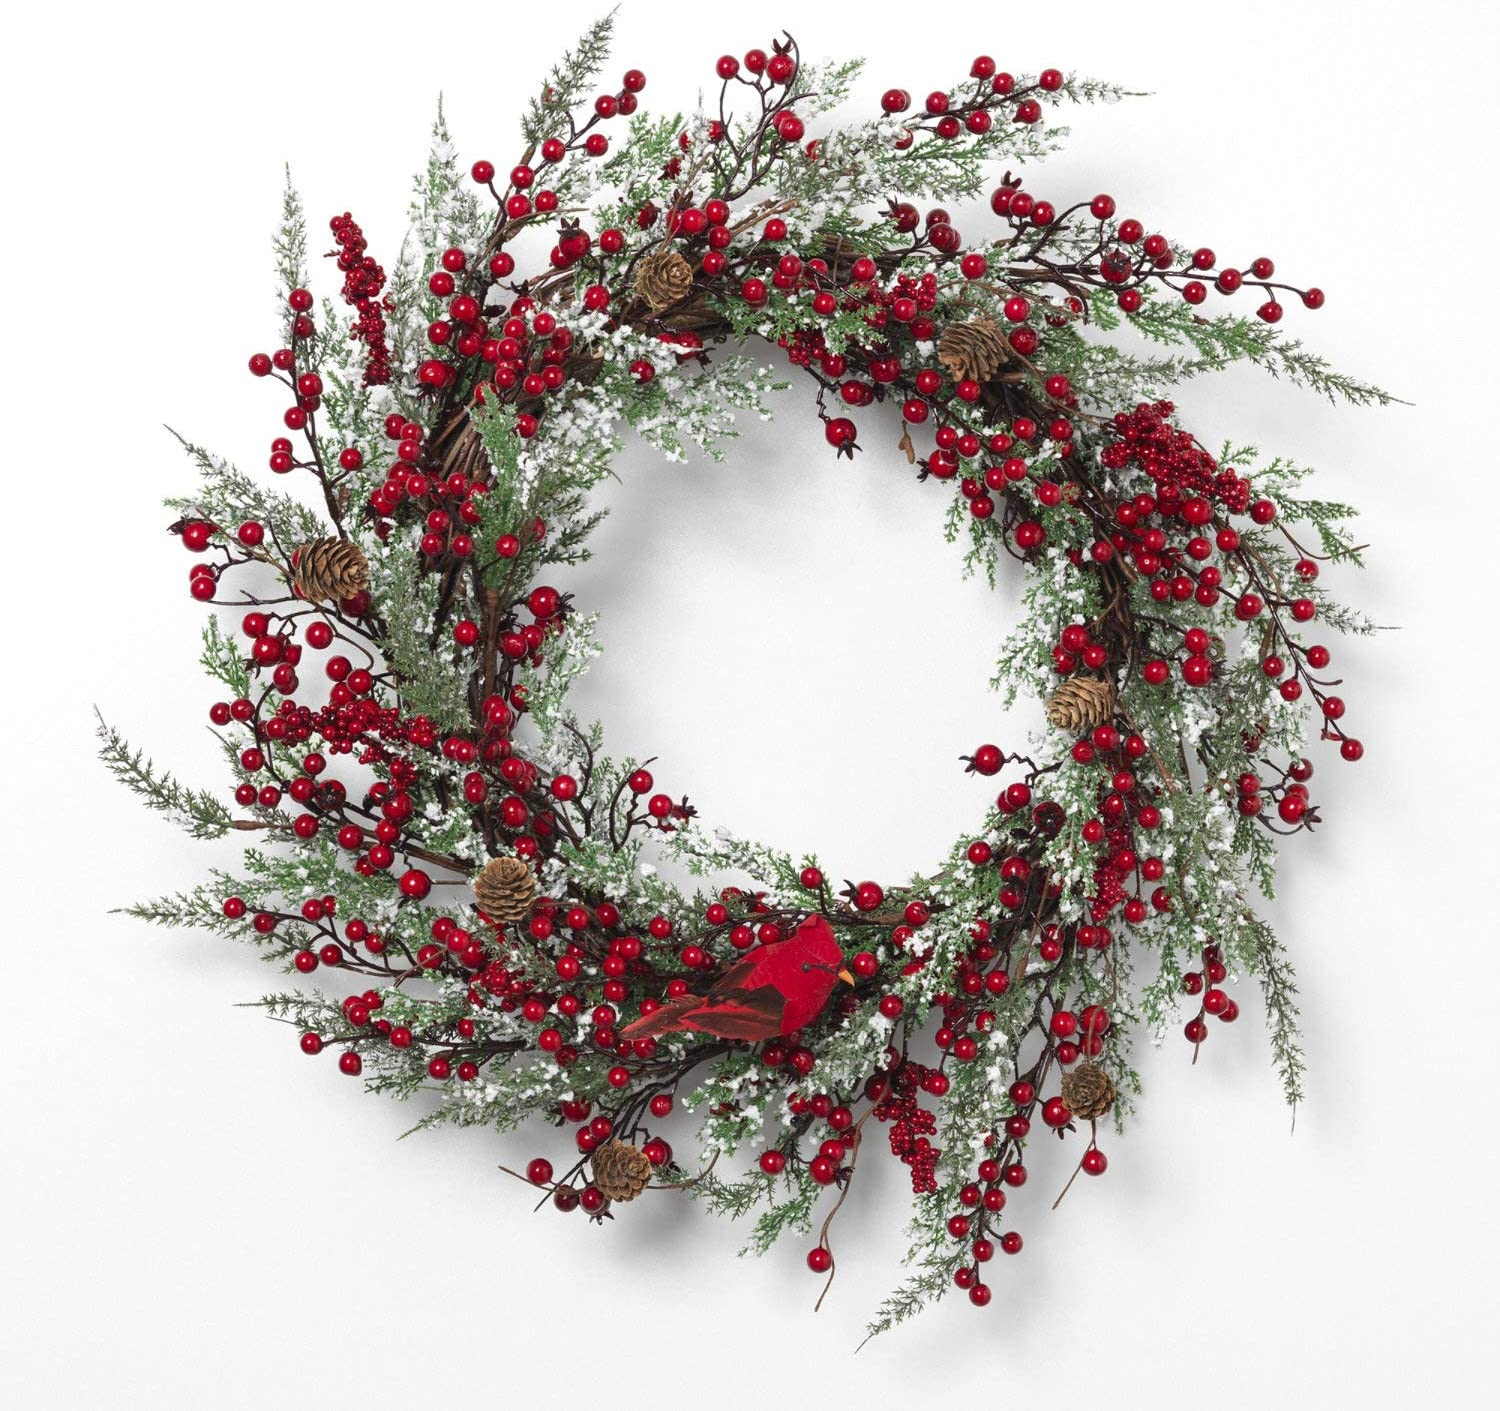 24-Inch Rustic Red Berry and Snowy Greenery Holiday Wreath with Cardinal for Front Door - Hanging Christmas Decoration - Winter Home Decor